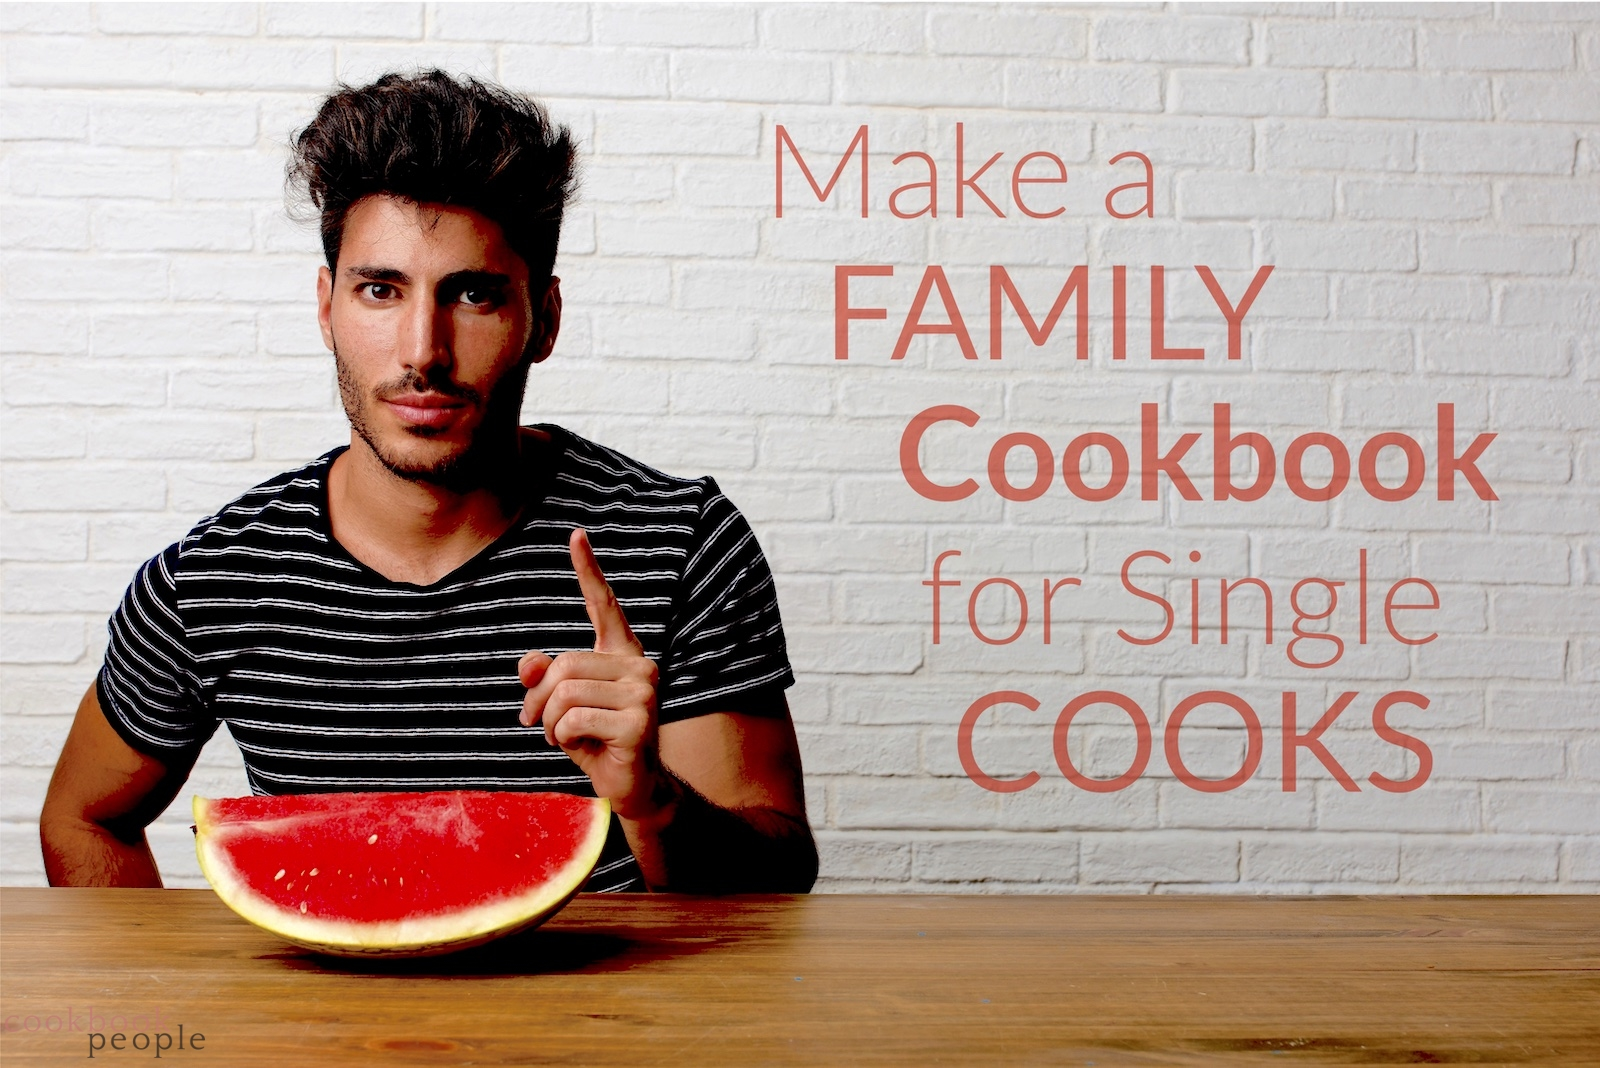 young man with watermelon slice + text: Make a Family Cookbook for Single Cooks